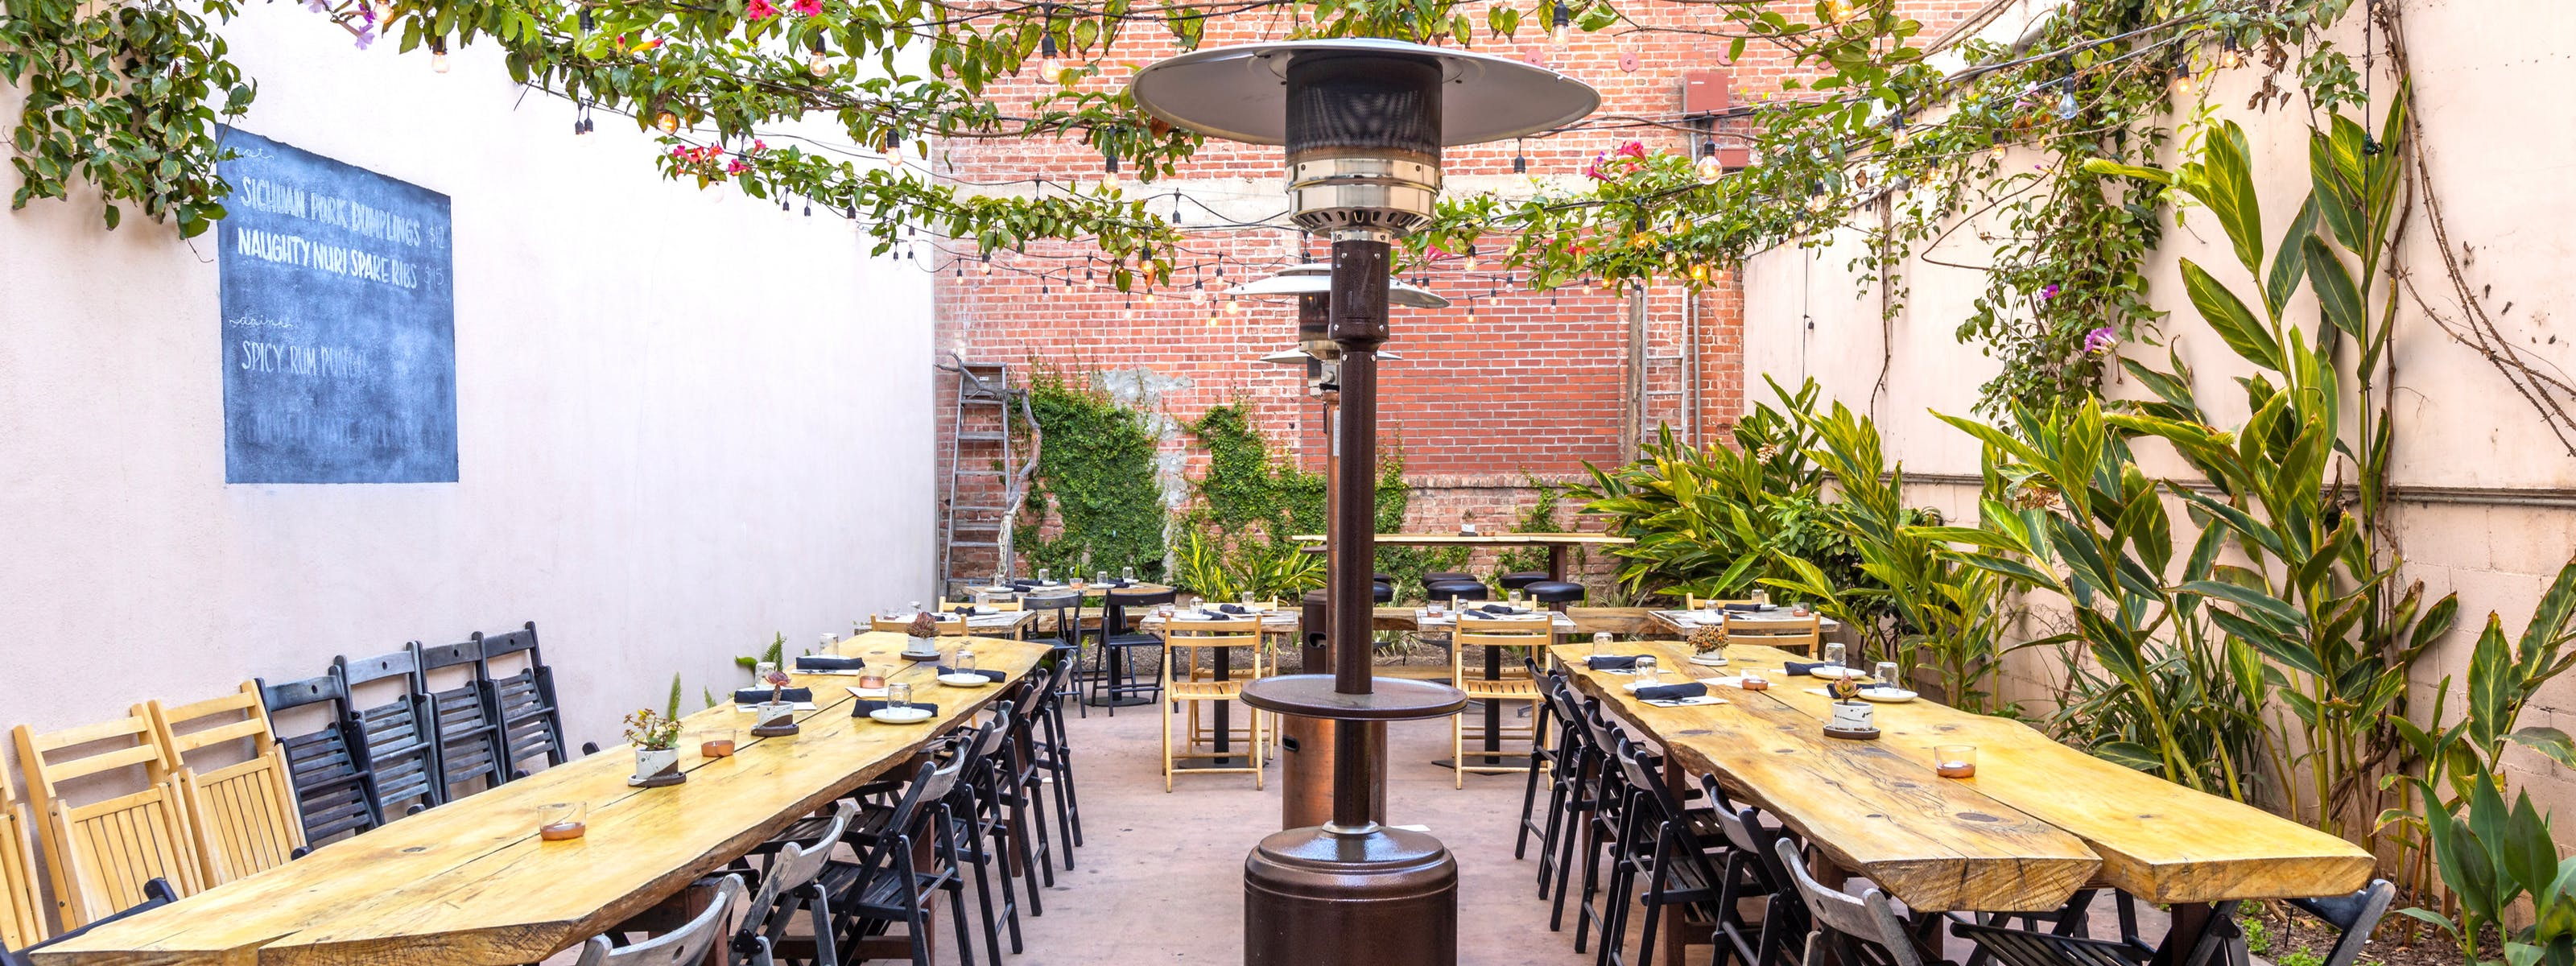 NYC Restaurants With Outdoor Heat Lamps - New York - The Infatuation